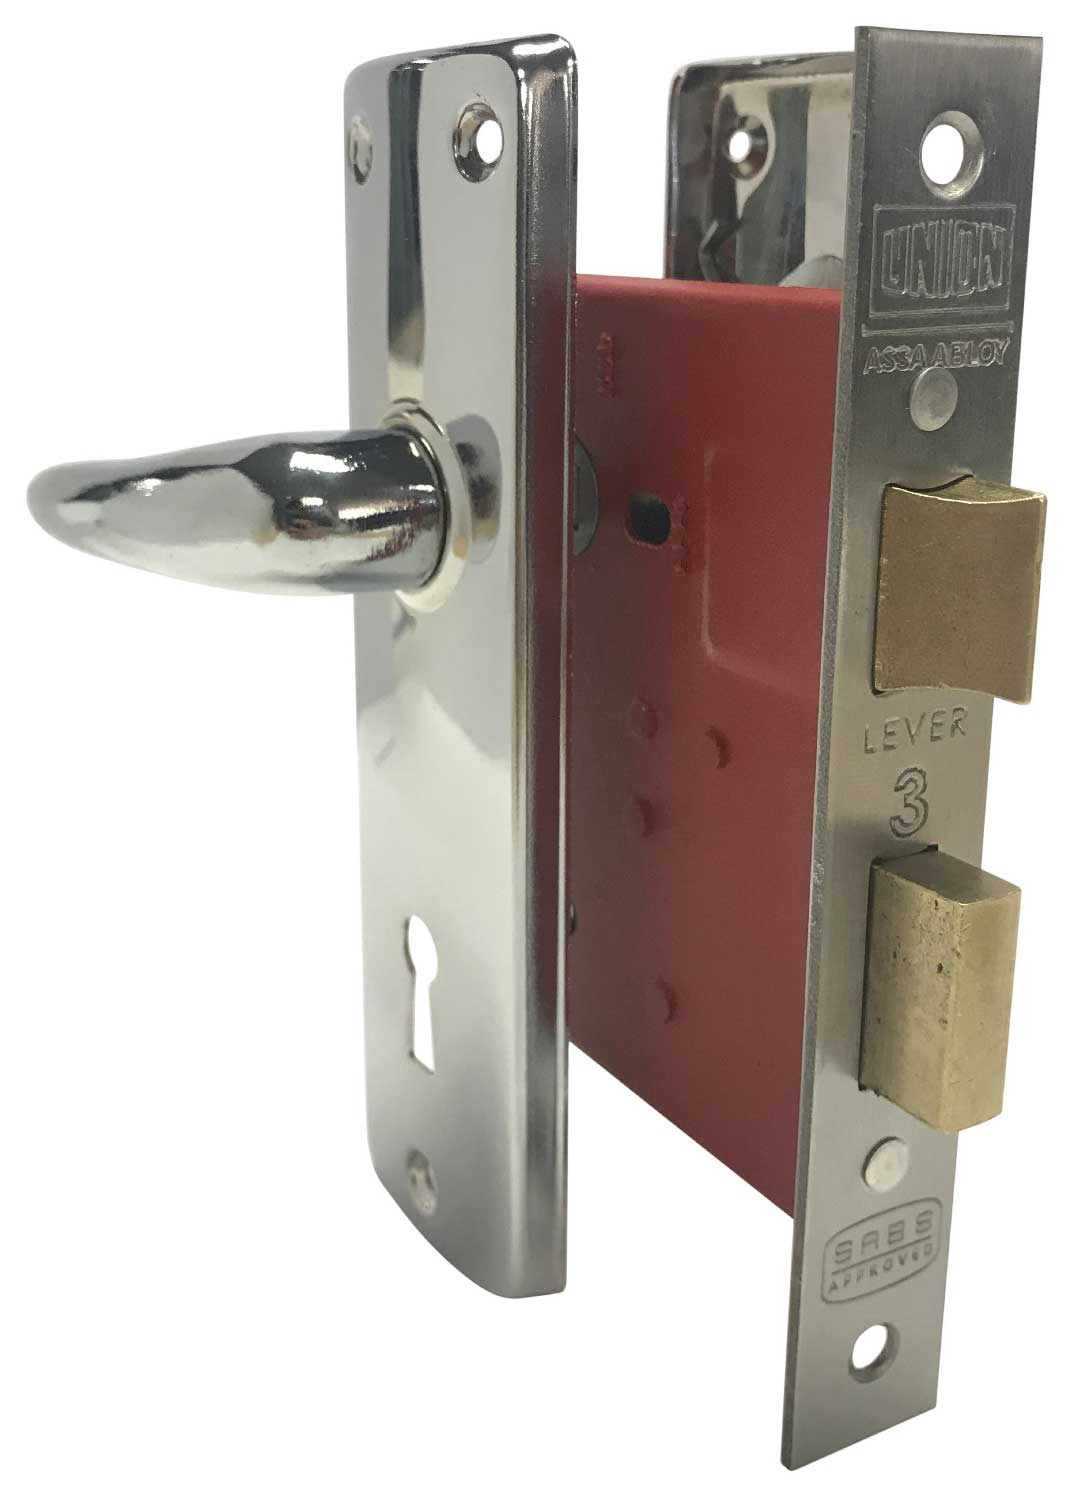 UNION locksets now rebranded